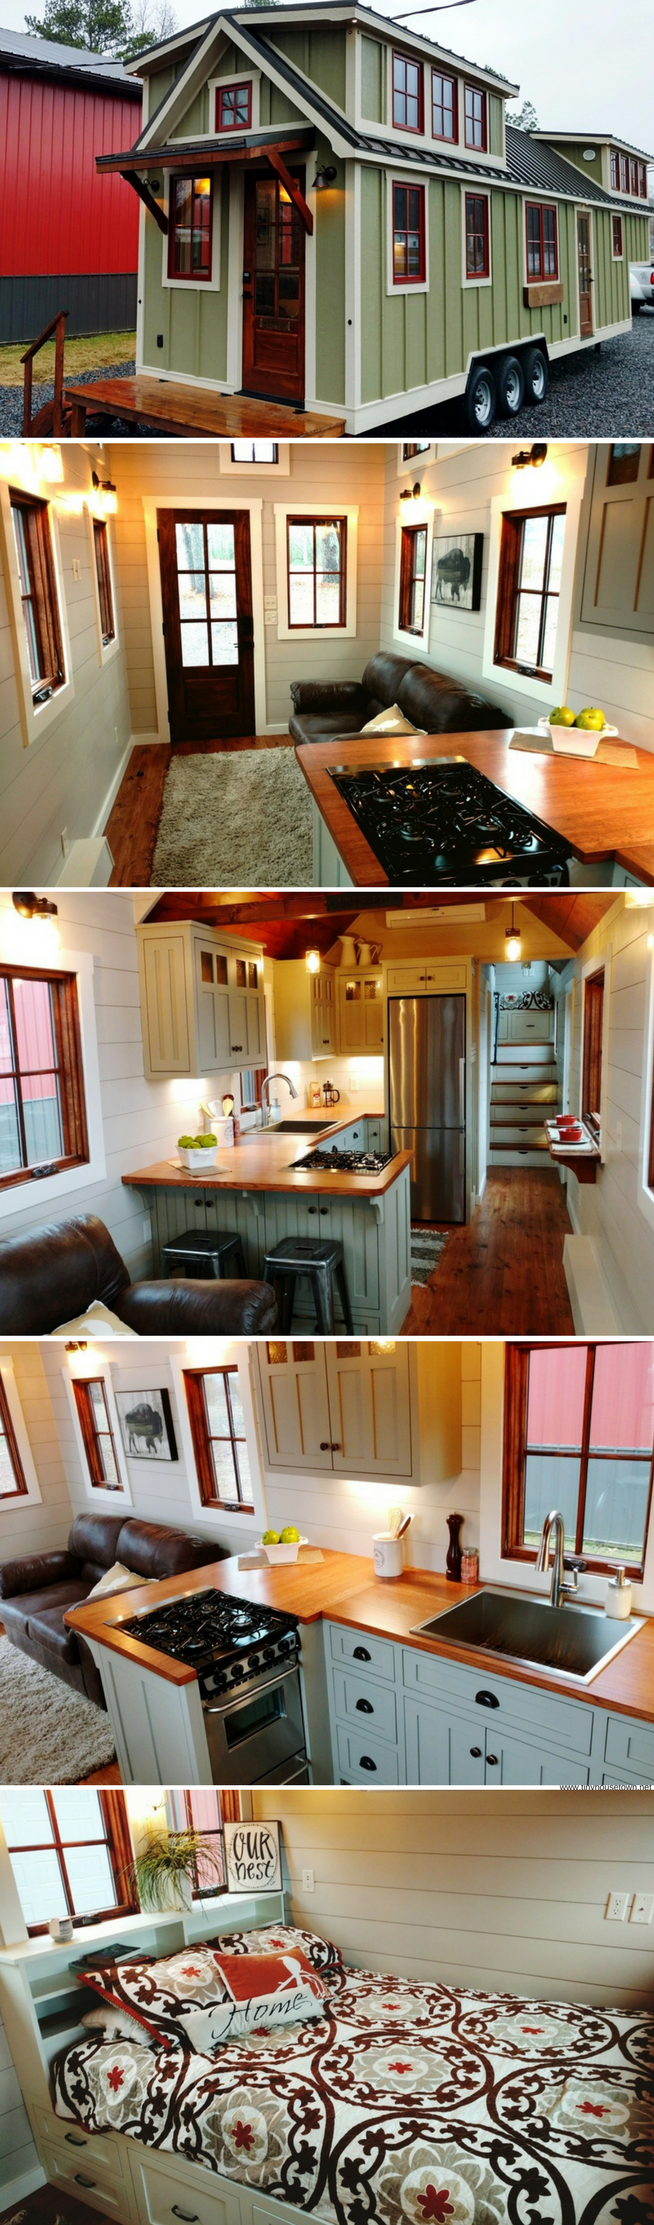 Vintage Retreat by Hill Country Tiny Houses | Tiny houses, Master ...